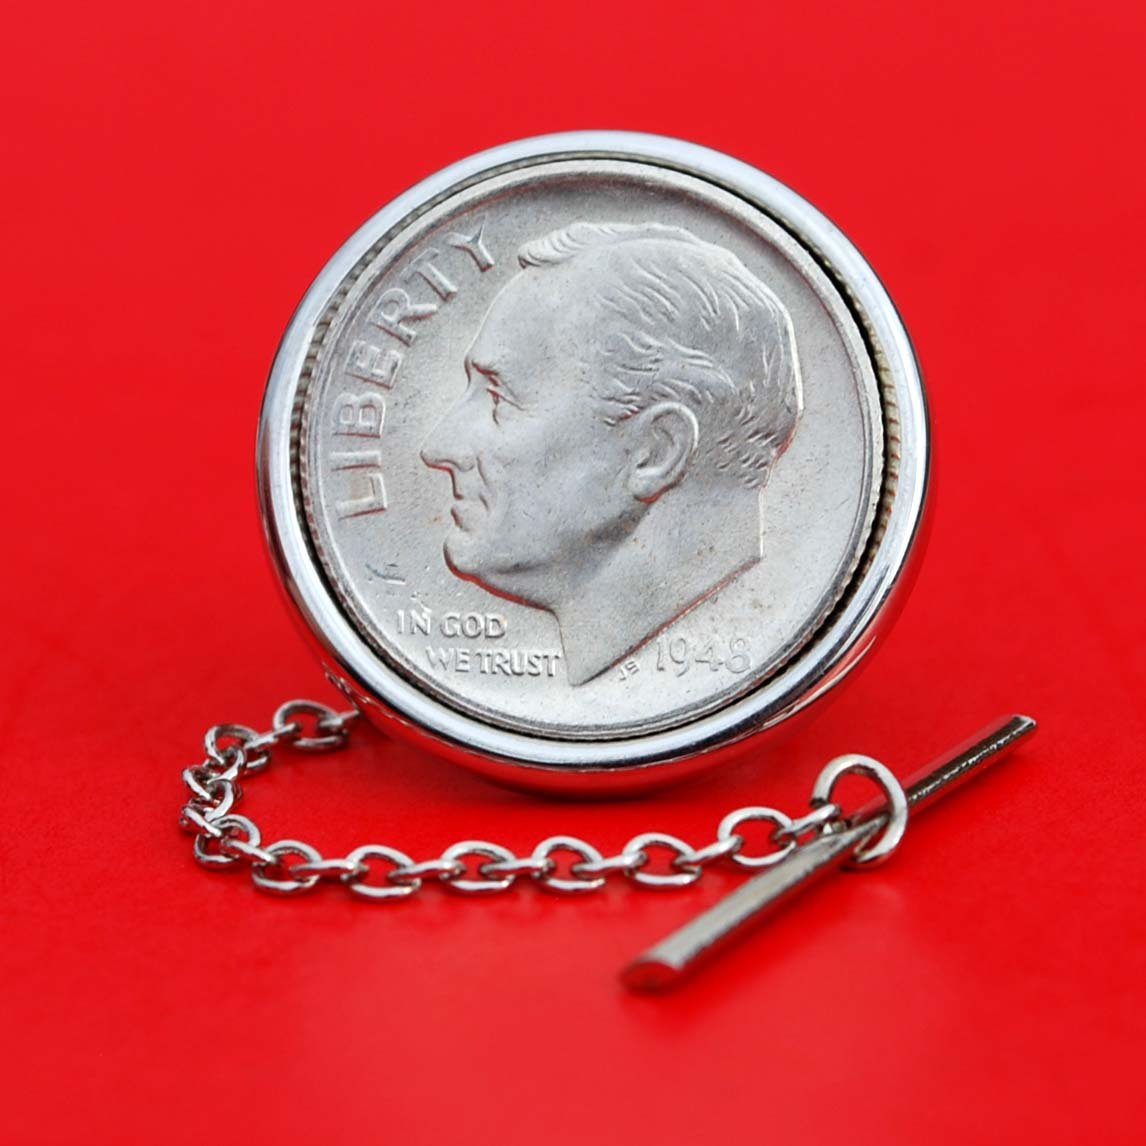 US 1948 Roosevelt Dime 90% Silver 10 Cent Gem BU Uncirculated Coin Silver Plated Tie Tac Tack Pin NEW